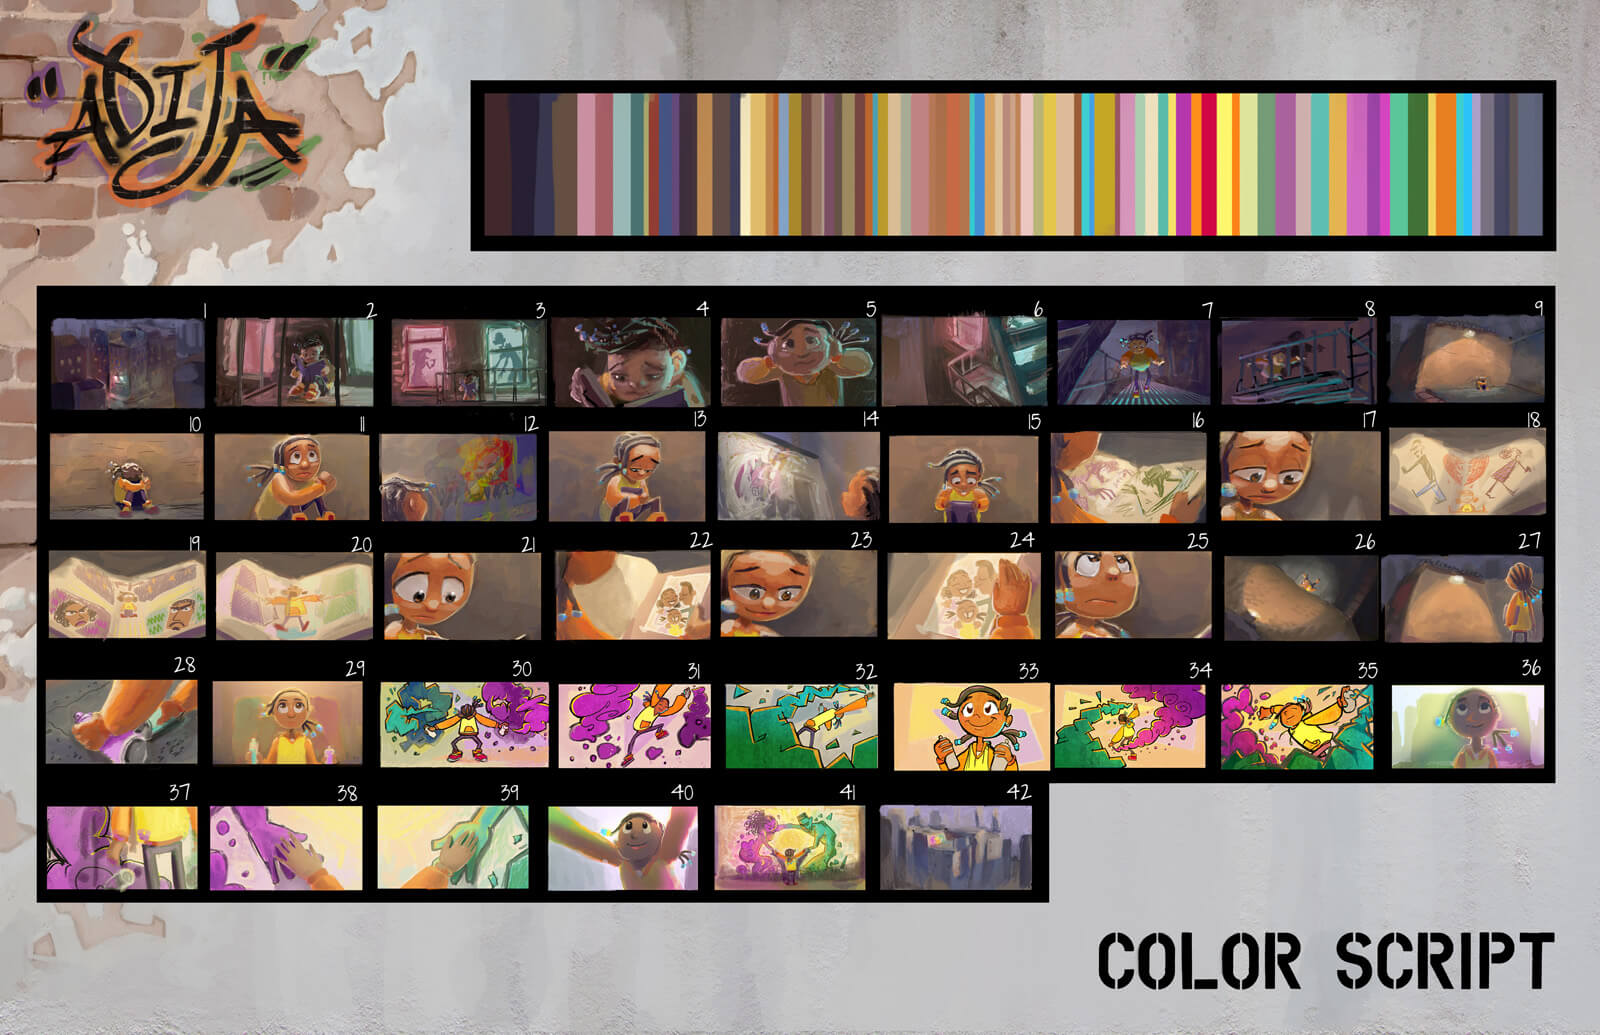 Color storyboard of the film Adija depicting the action from the beginning to end